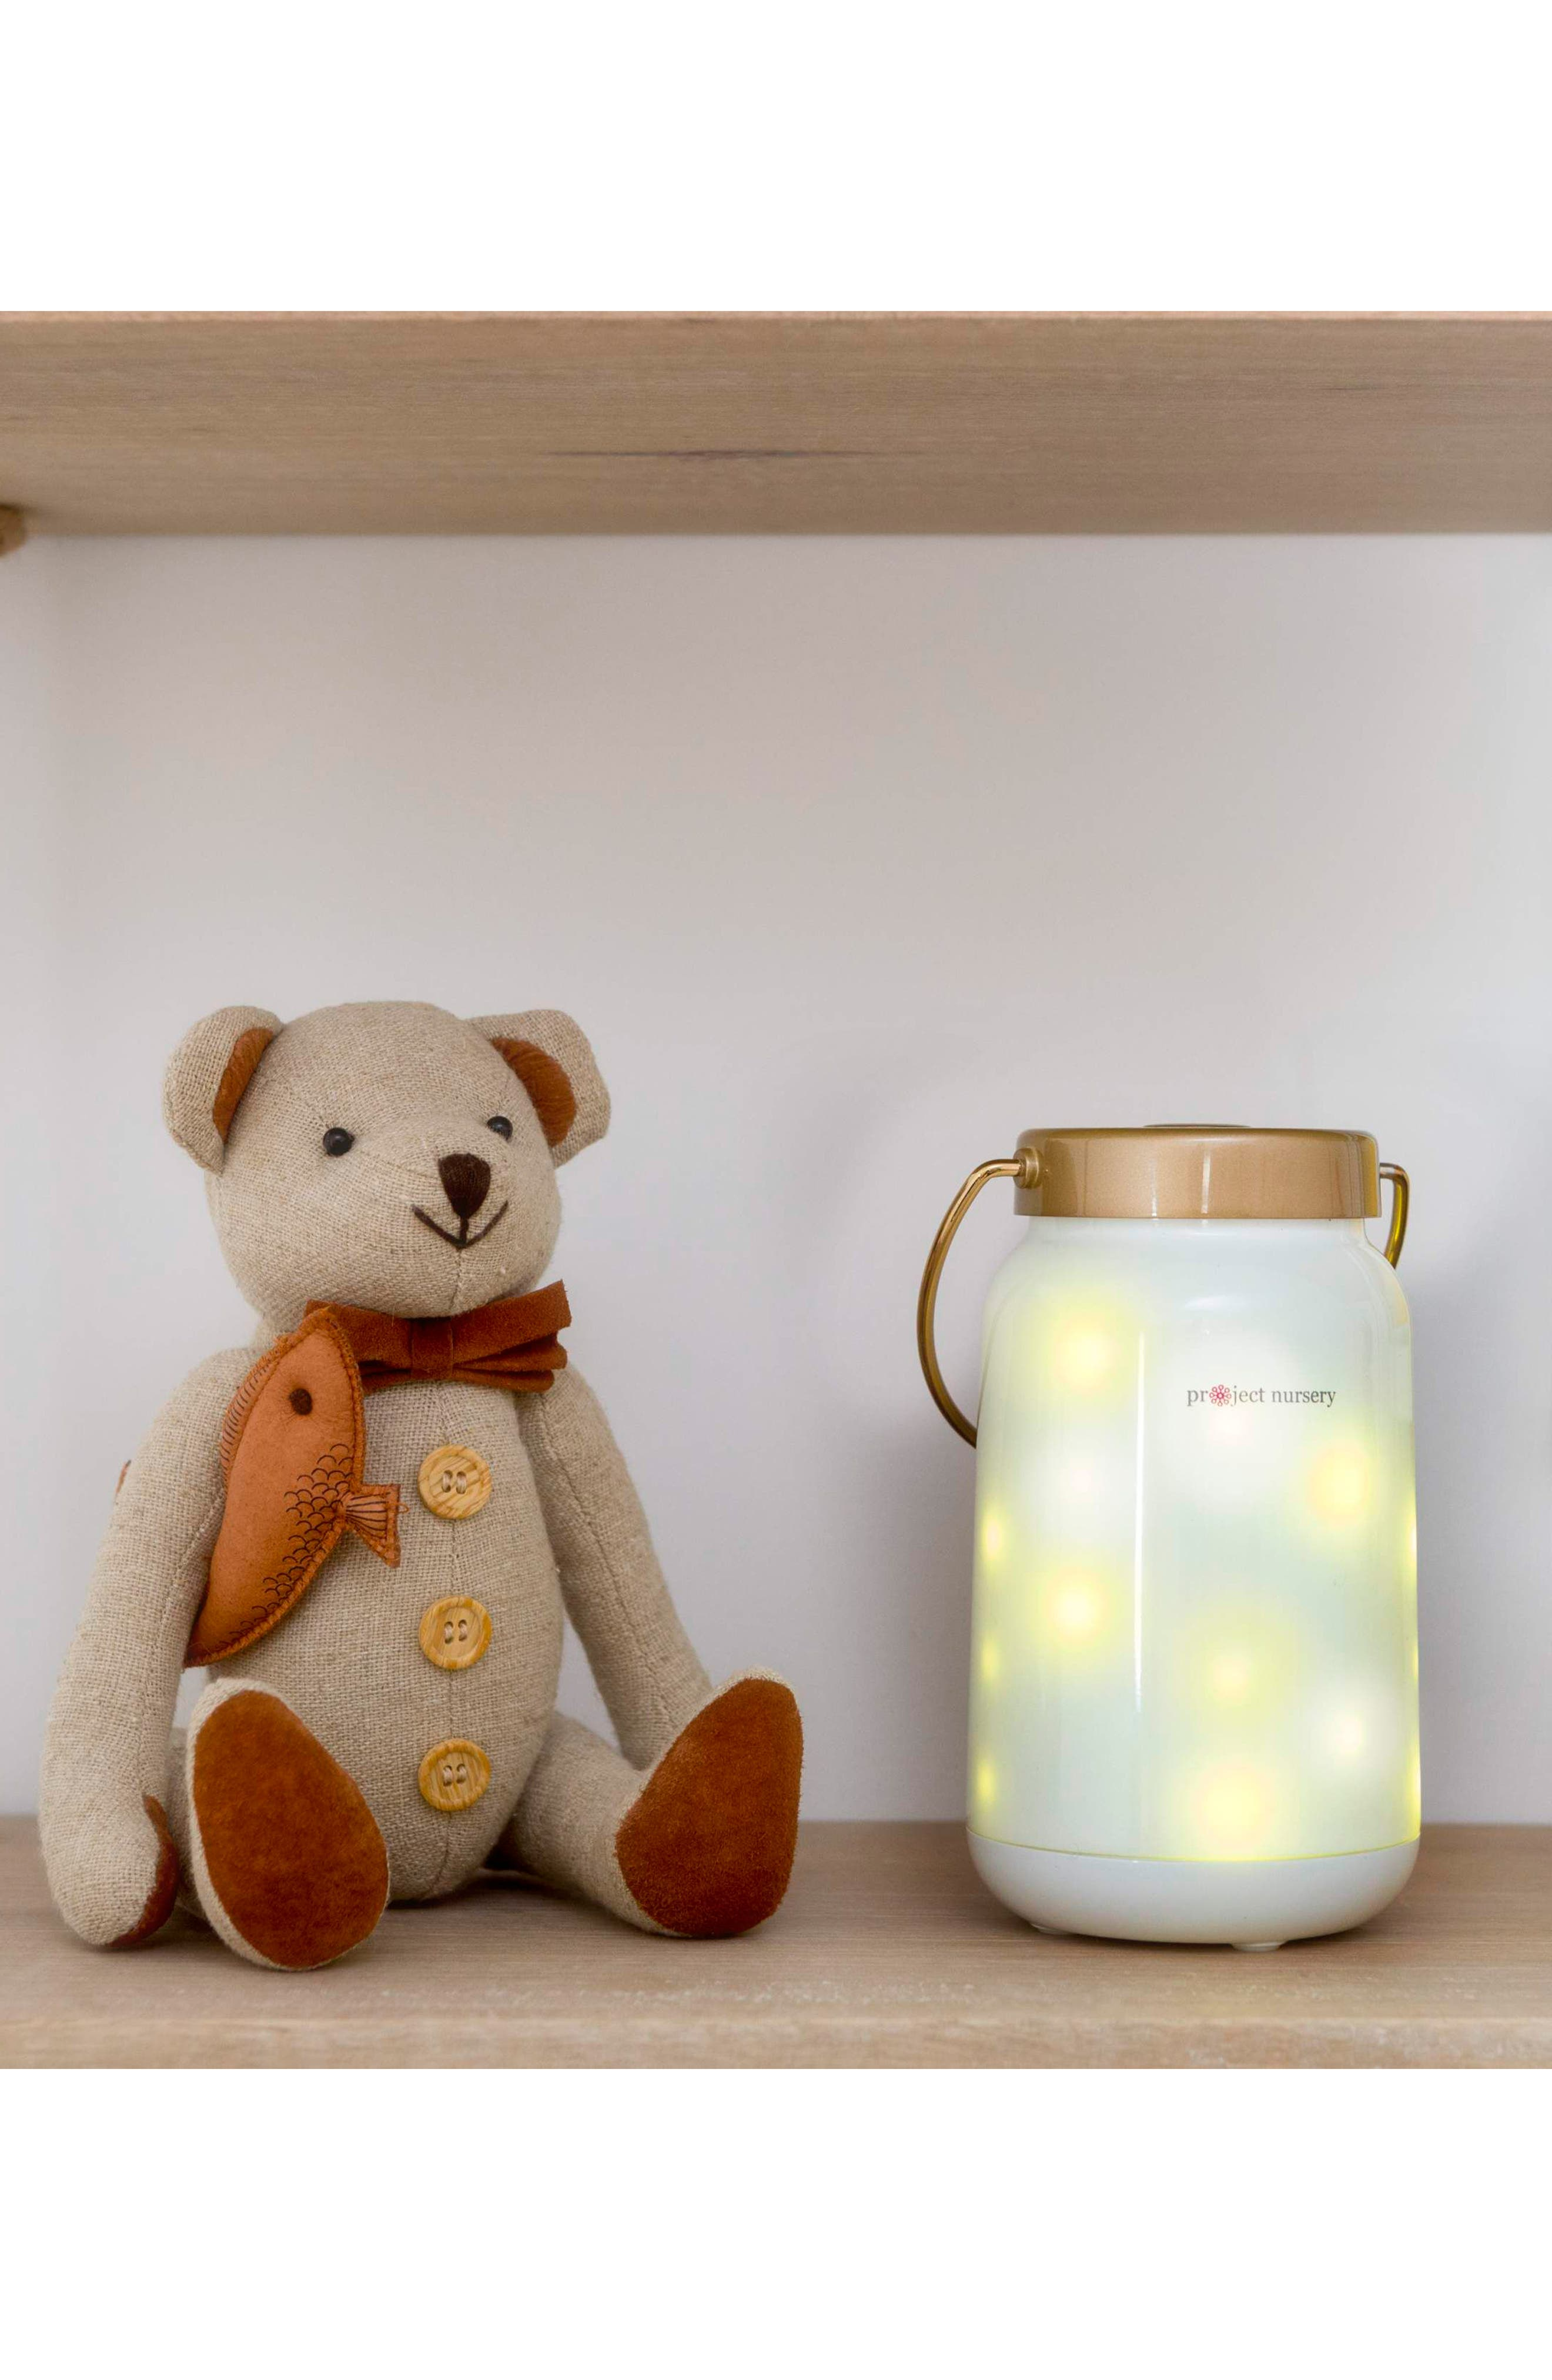 PROJECT NURSERY, Dreamweaver Smart Light + Sound Soother, Alternate thumbnail 3, color, 100